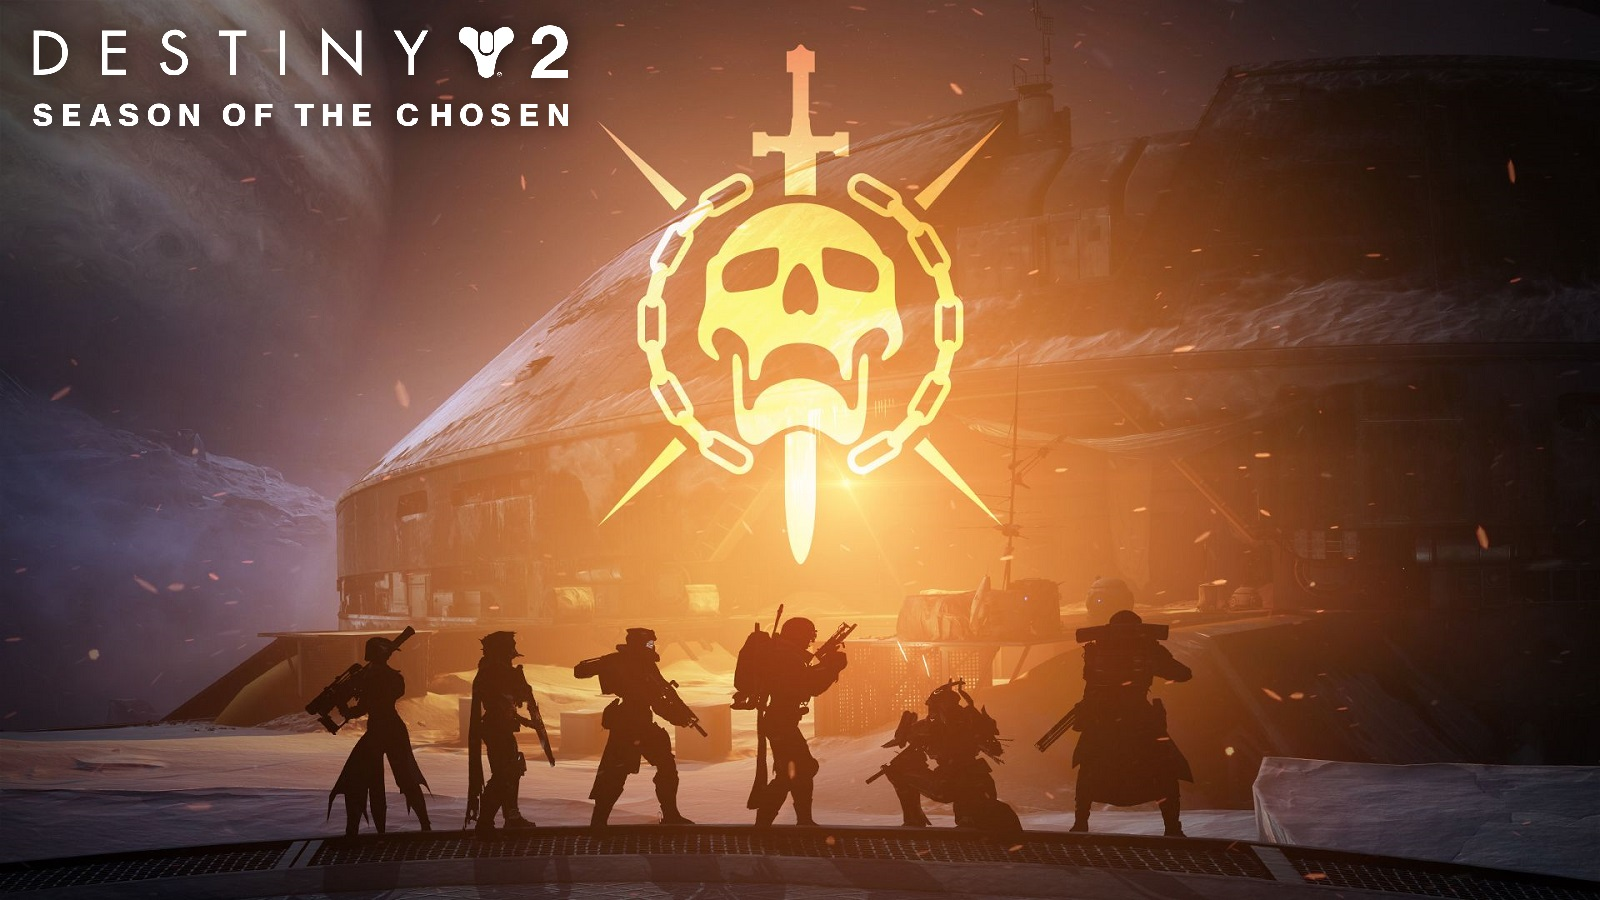 Destiny 2 Deep Stone Crypt Guardians With Raid Logo Season of the Chosen Text